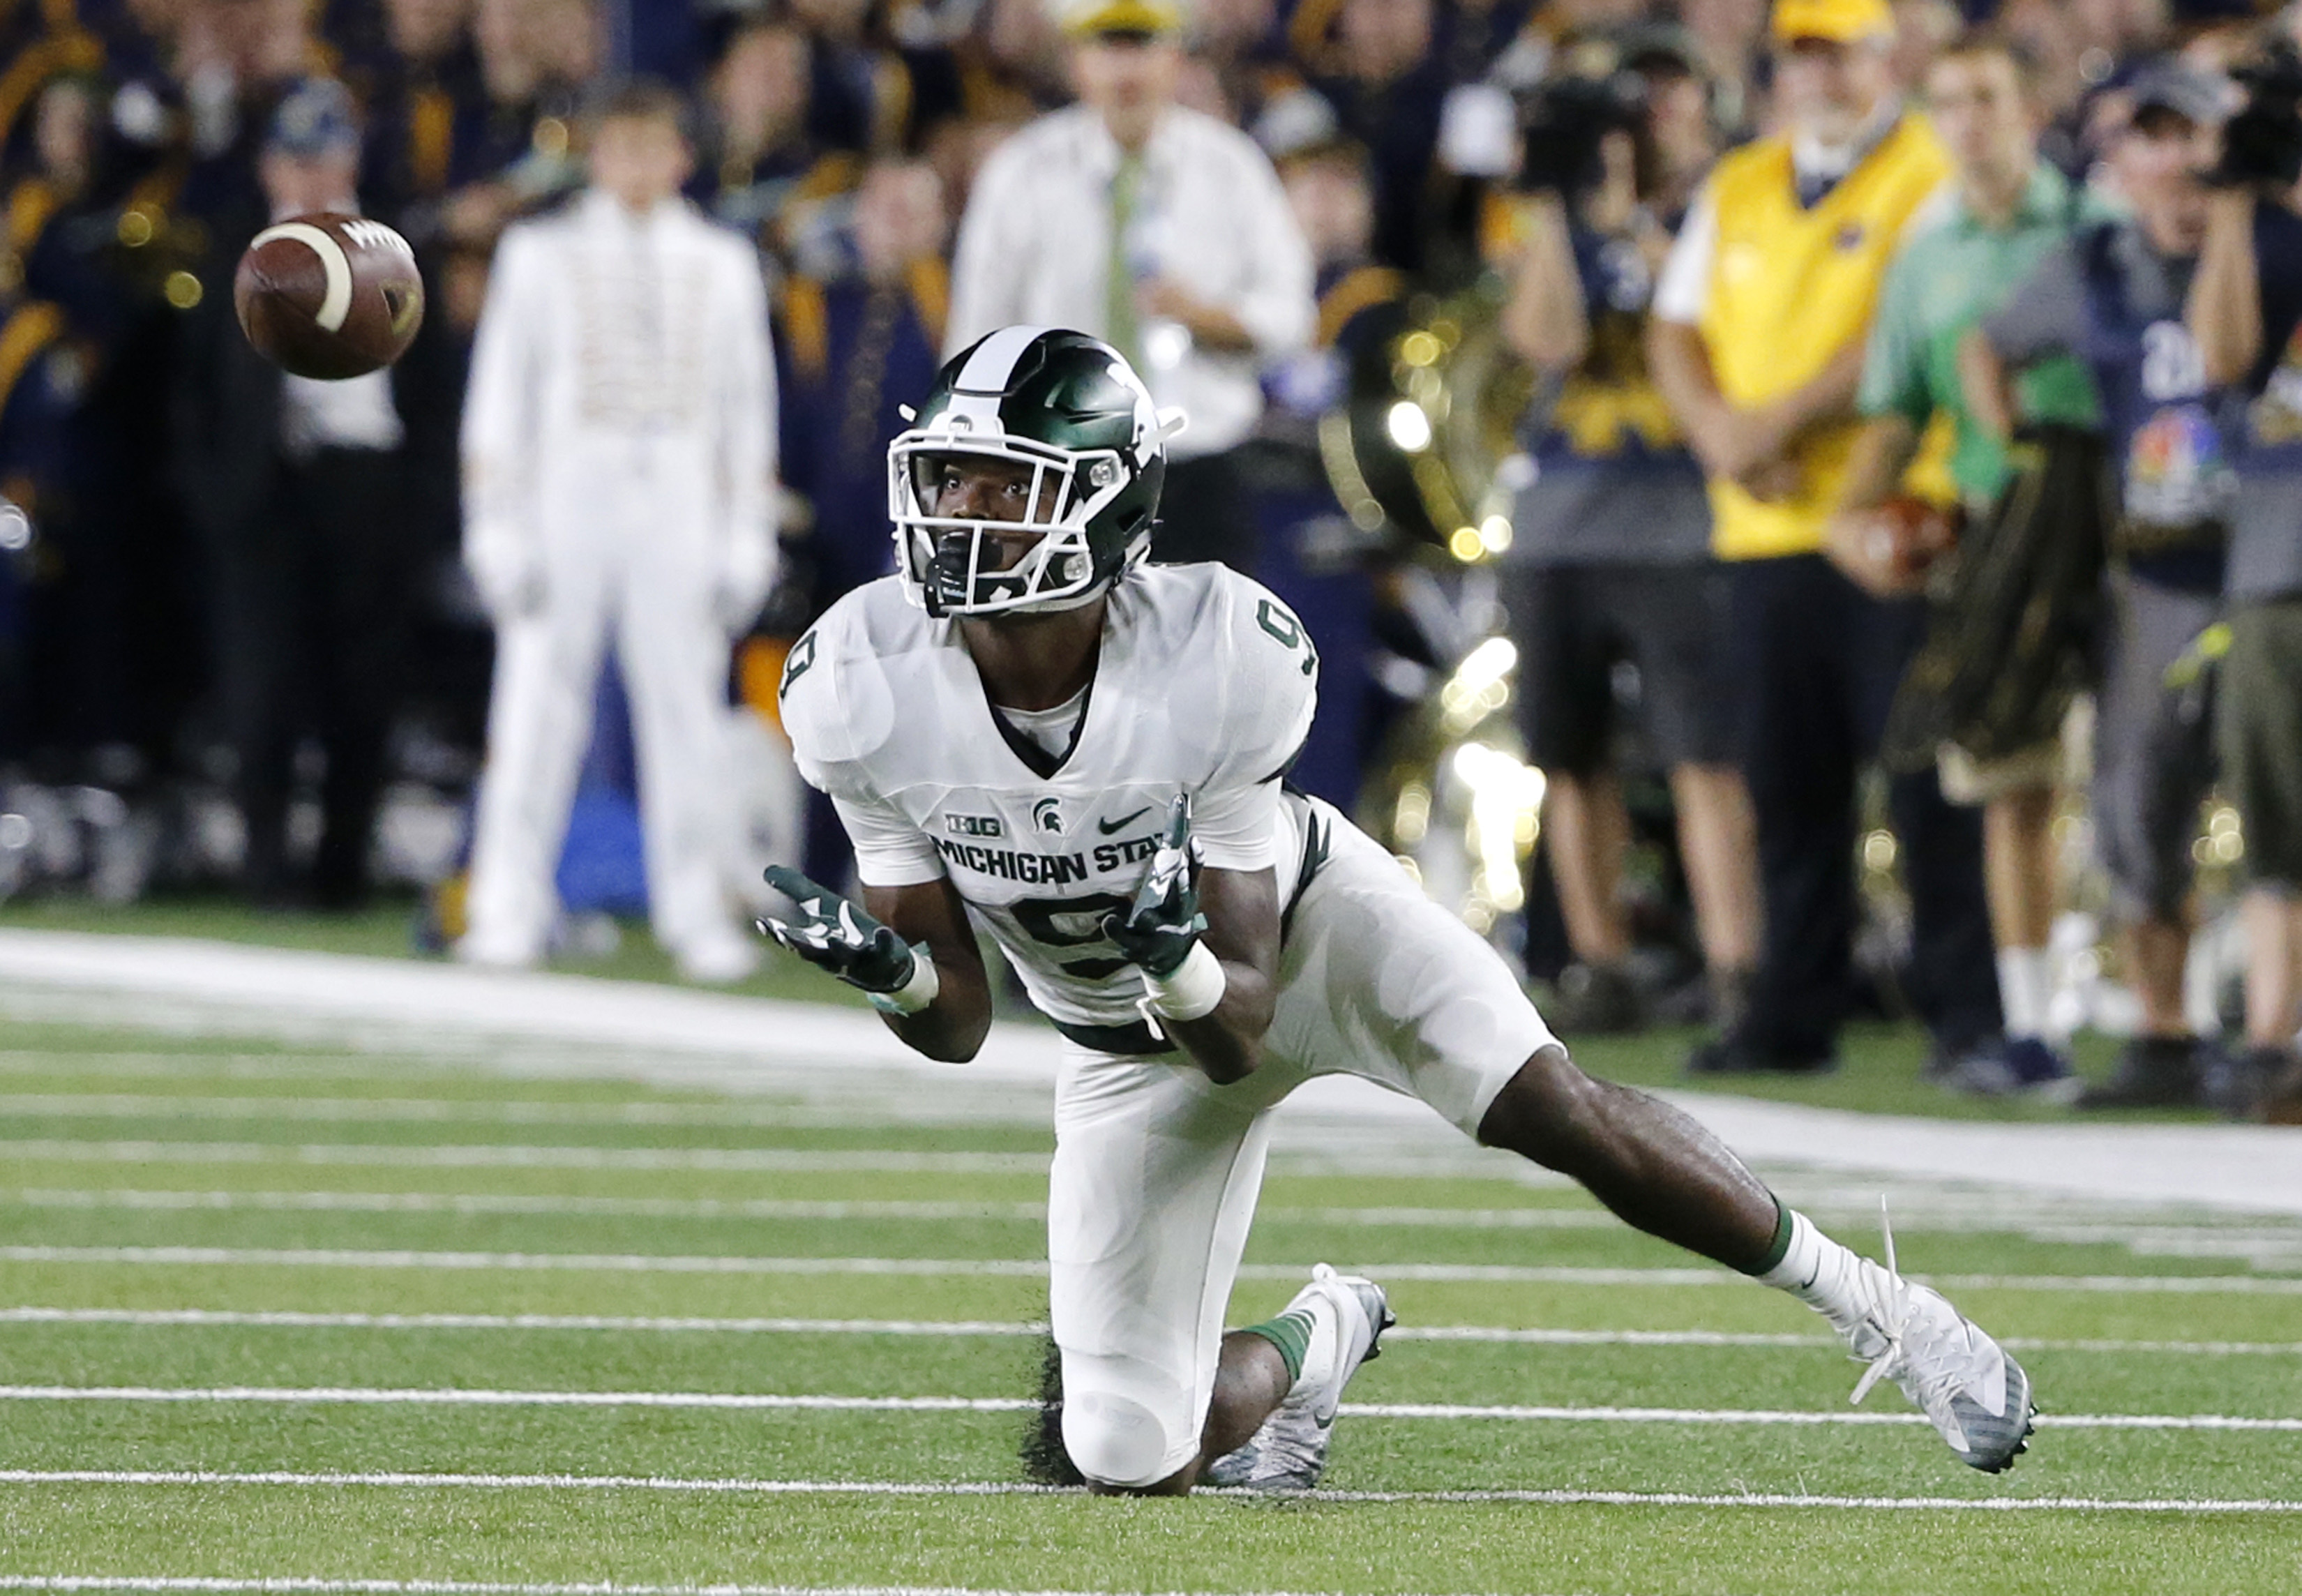 FILE - In this Sept. 17, 2016, file photo, Michigan State wide receiver Donnie Corley caches a pass from quarterback Tyler O'Connor during the closing minutes of an NCAA college football game against Notre Dame, in South Bend, Ind. Corley has become one o